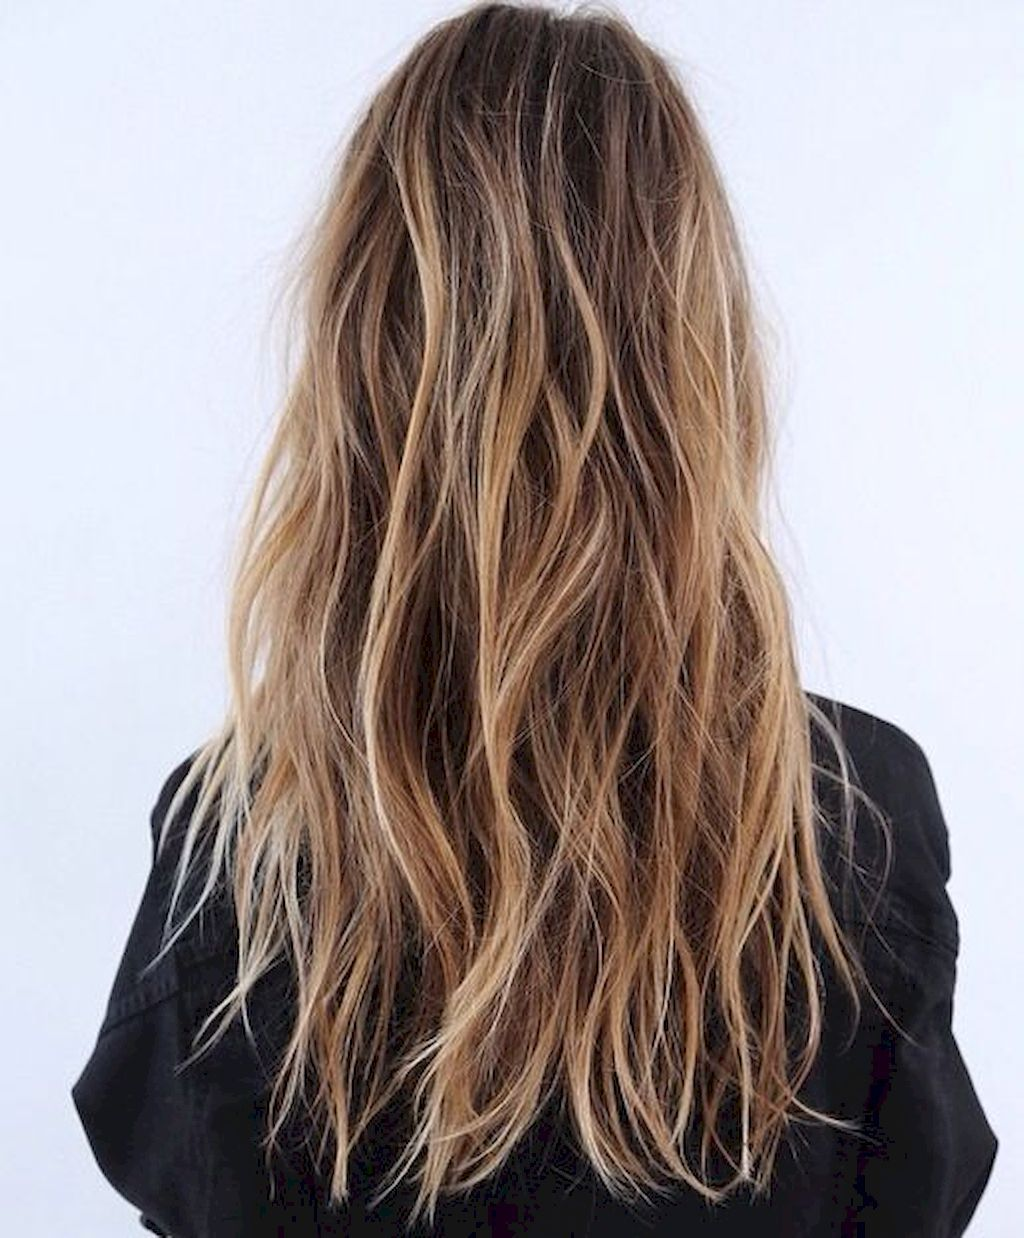 Best 11 Cute Ideas To Spice Up Light Brown Hair https://bellestilo